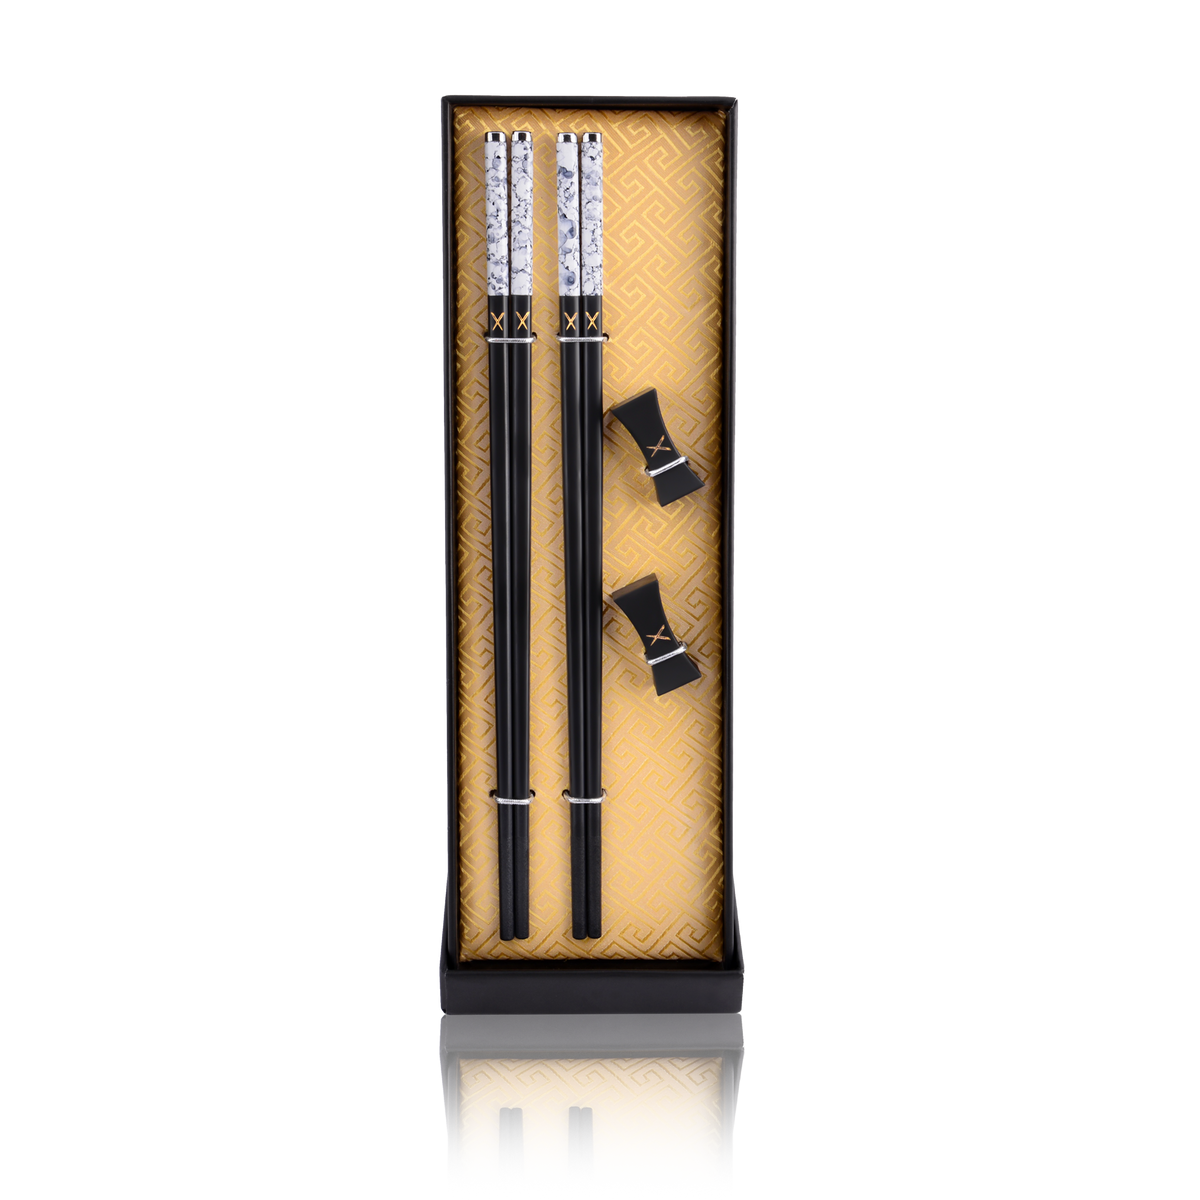 Luxury Chopsticks Set. Our chopsticks are luxurious, reusable and safe to use. Packed in a beautiful set, our designs are modern, traditional and elegant. Marble-ous - LuxSticks